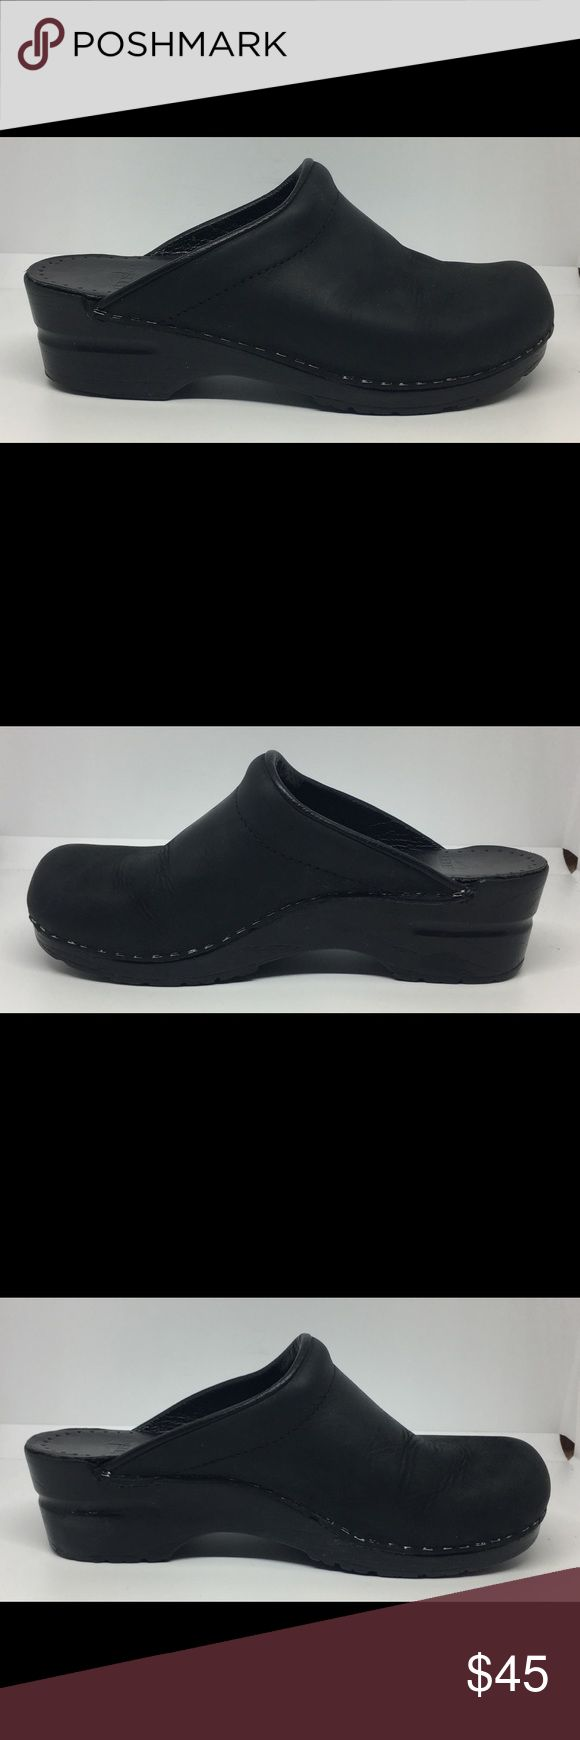 Dansko Womans Black Mule Shoes EUR 37 US 6.5-7 Worn a few times. Wear on the right heel There is shoe goo on the right heel to pin it down. Very Good Condition. See Pictures. Bin 9 B89 Dansko Shoes Mules & Clogs